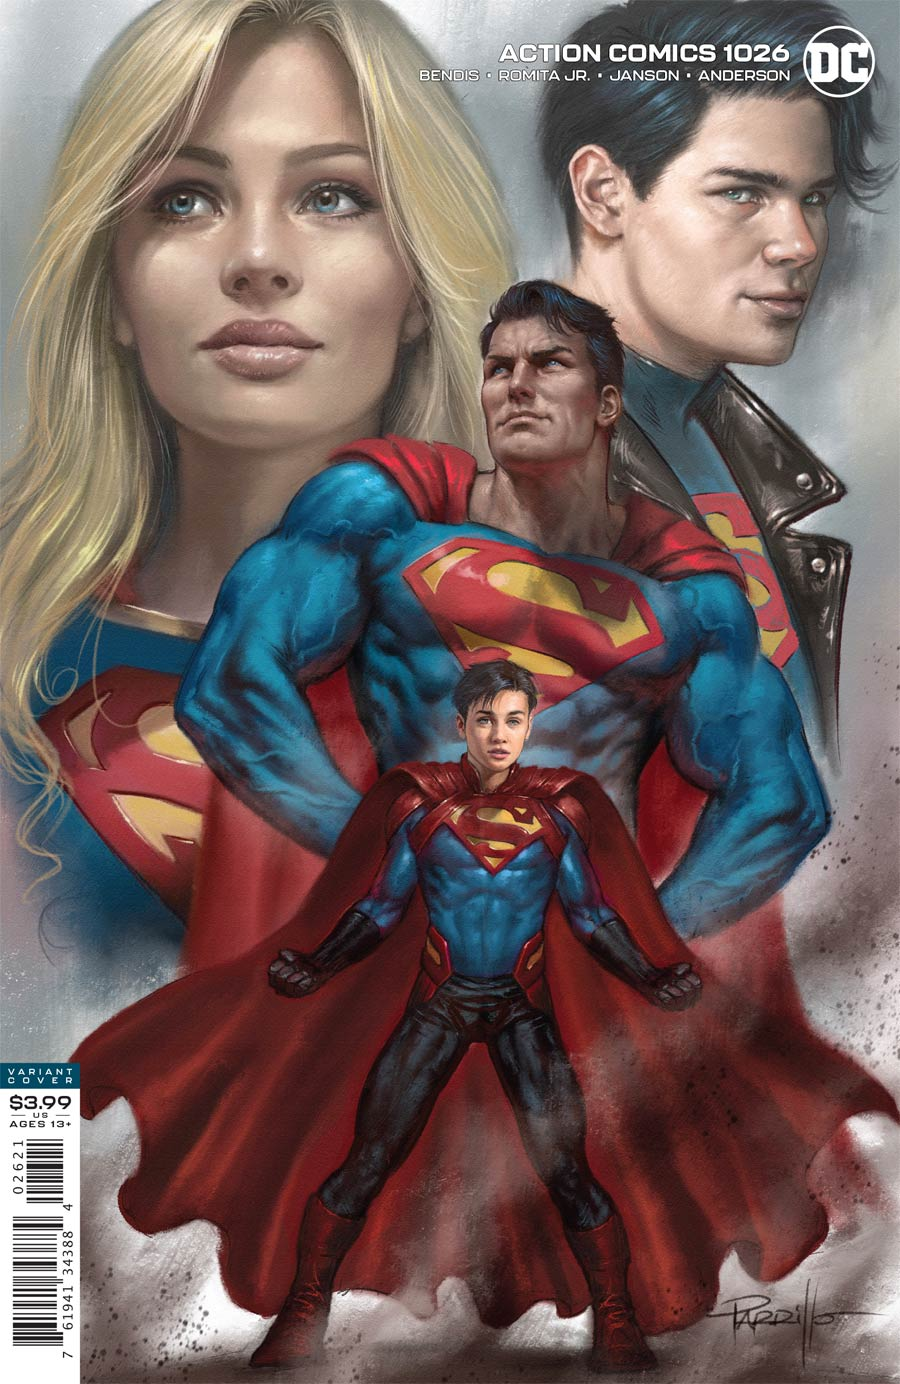 Action Comics Vol 2 #1026 Cover B Variant Lucio Parrillo Cover